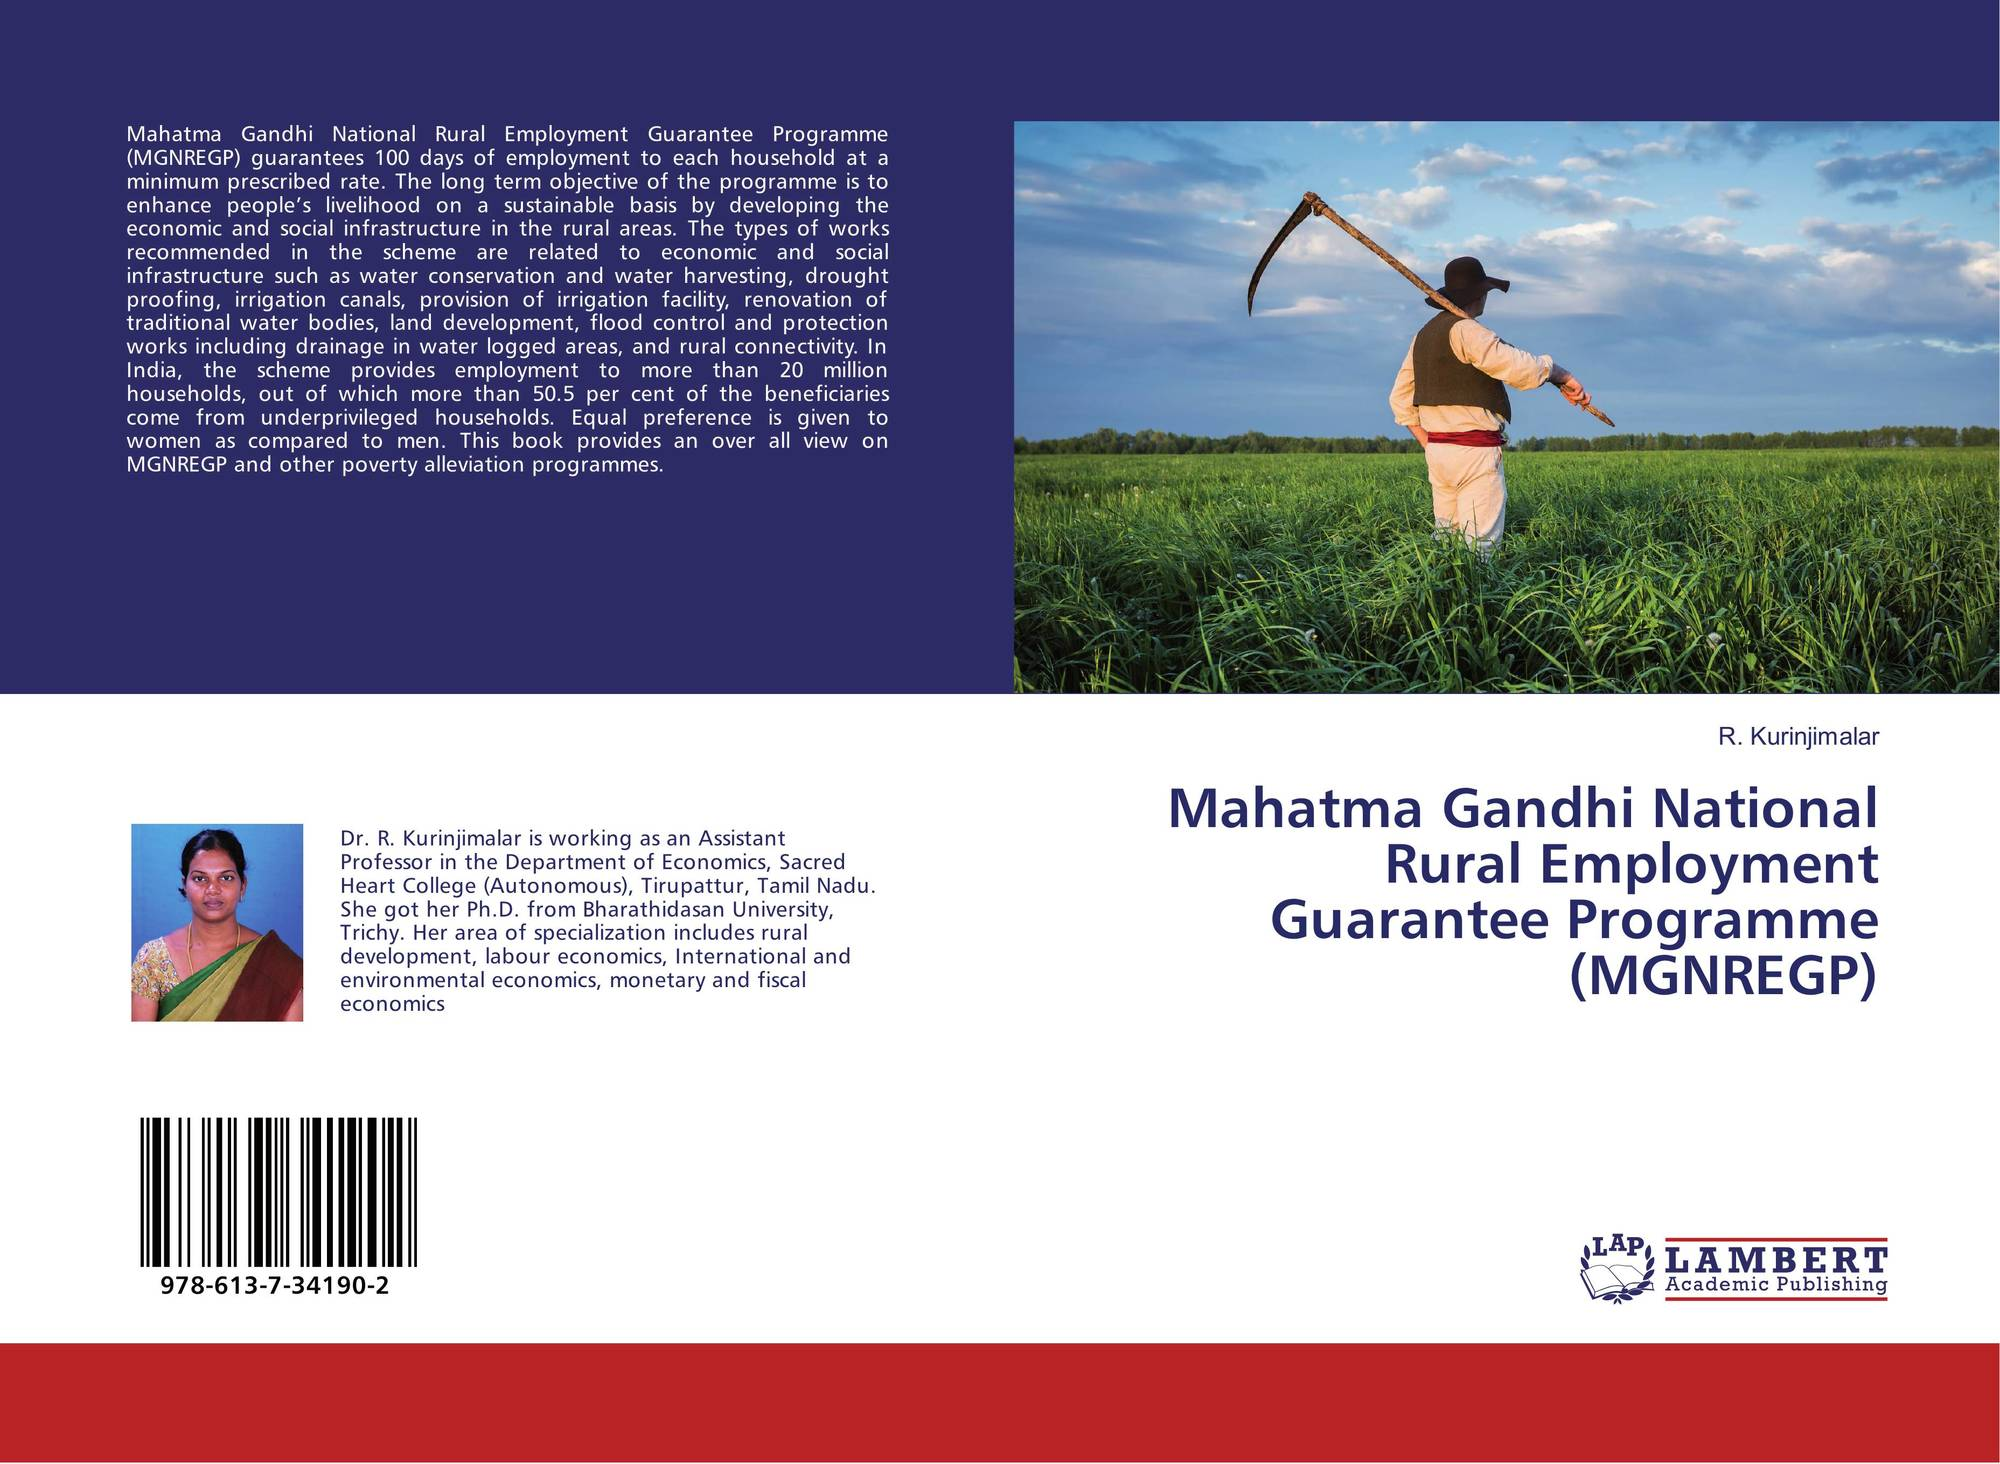 mahatma gandhi national rural employment guarantee Welcome to mahatma gandhi national rural employment guarantee scheme : the mgnregs act aims at enhancing the livelihood security of people in rural areas by guaranteeing hundred days of wage-employment in a financial year to a rural household whose adult members volunteer to do unskilled manual work more info.